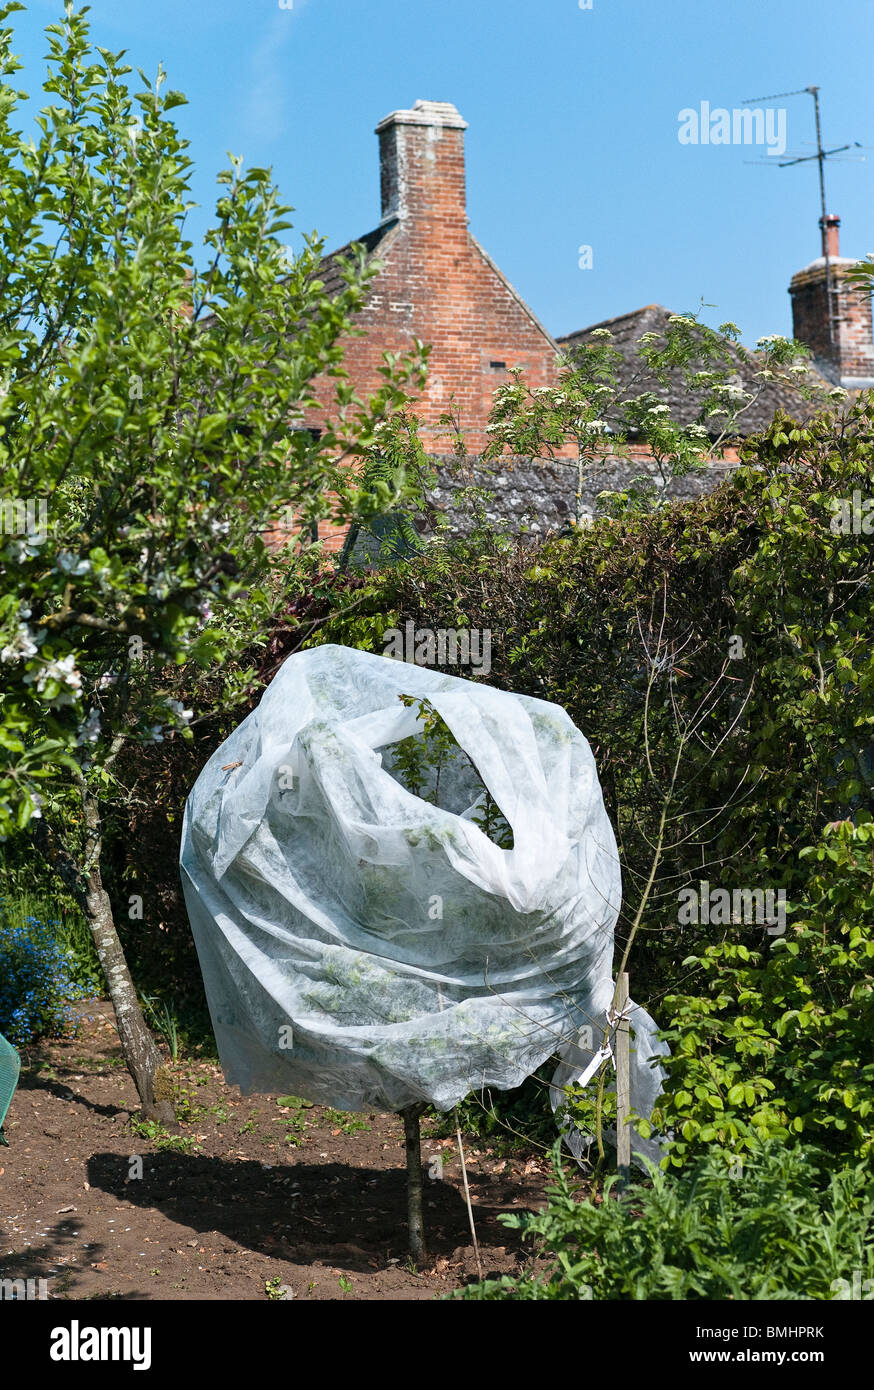 Fibrous horticultural fleece protecting small fruit tree in May from night frost - Stock Image